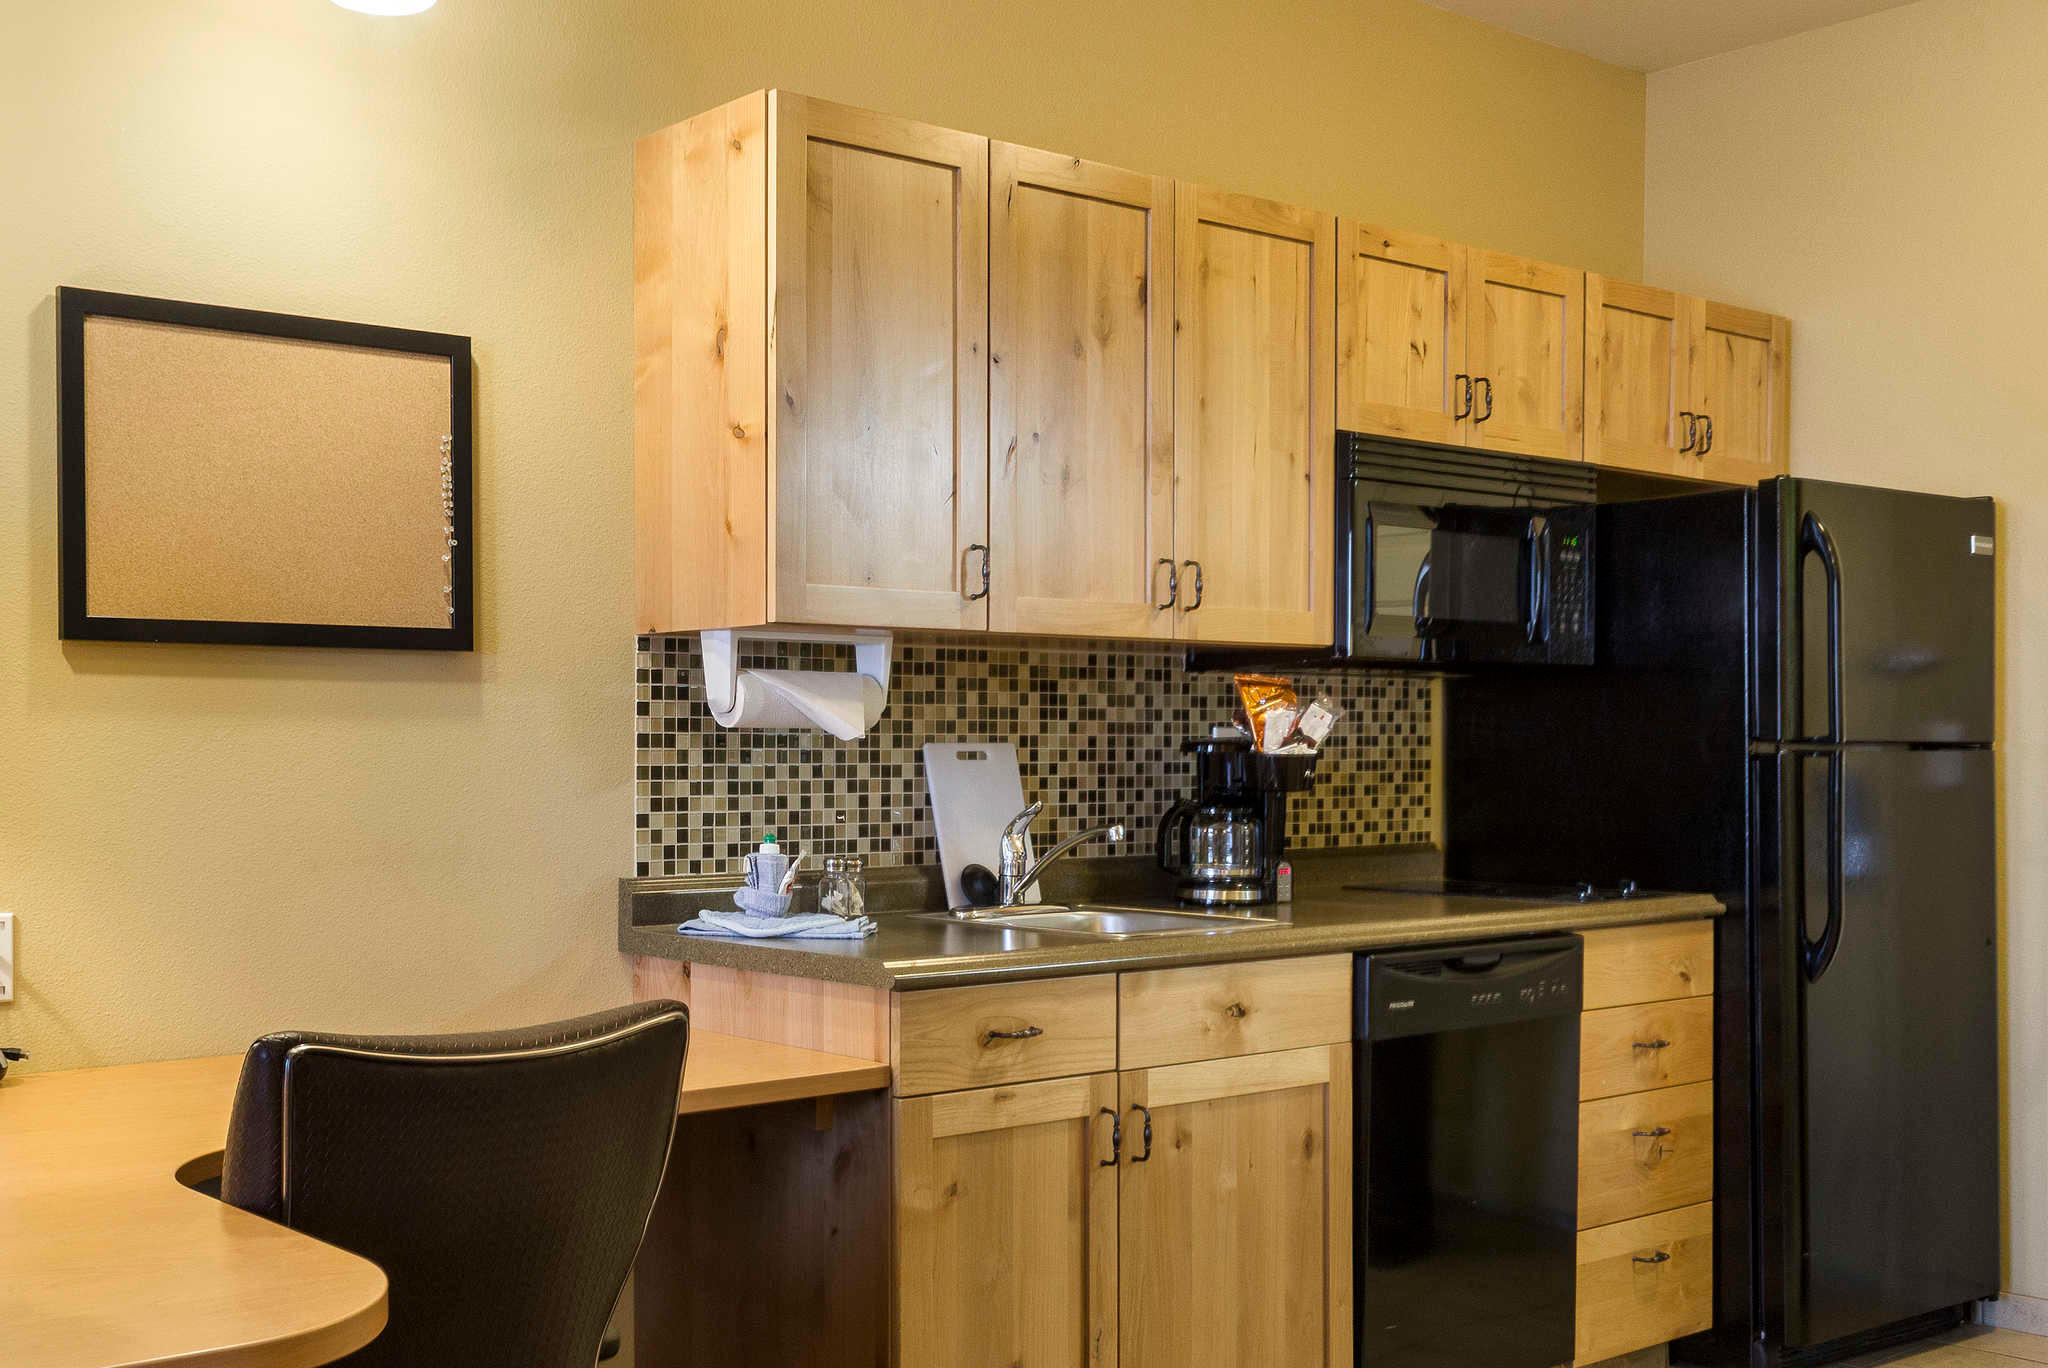 MainStay Suites image 14